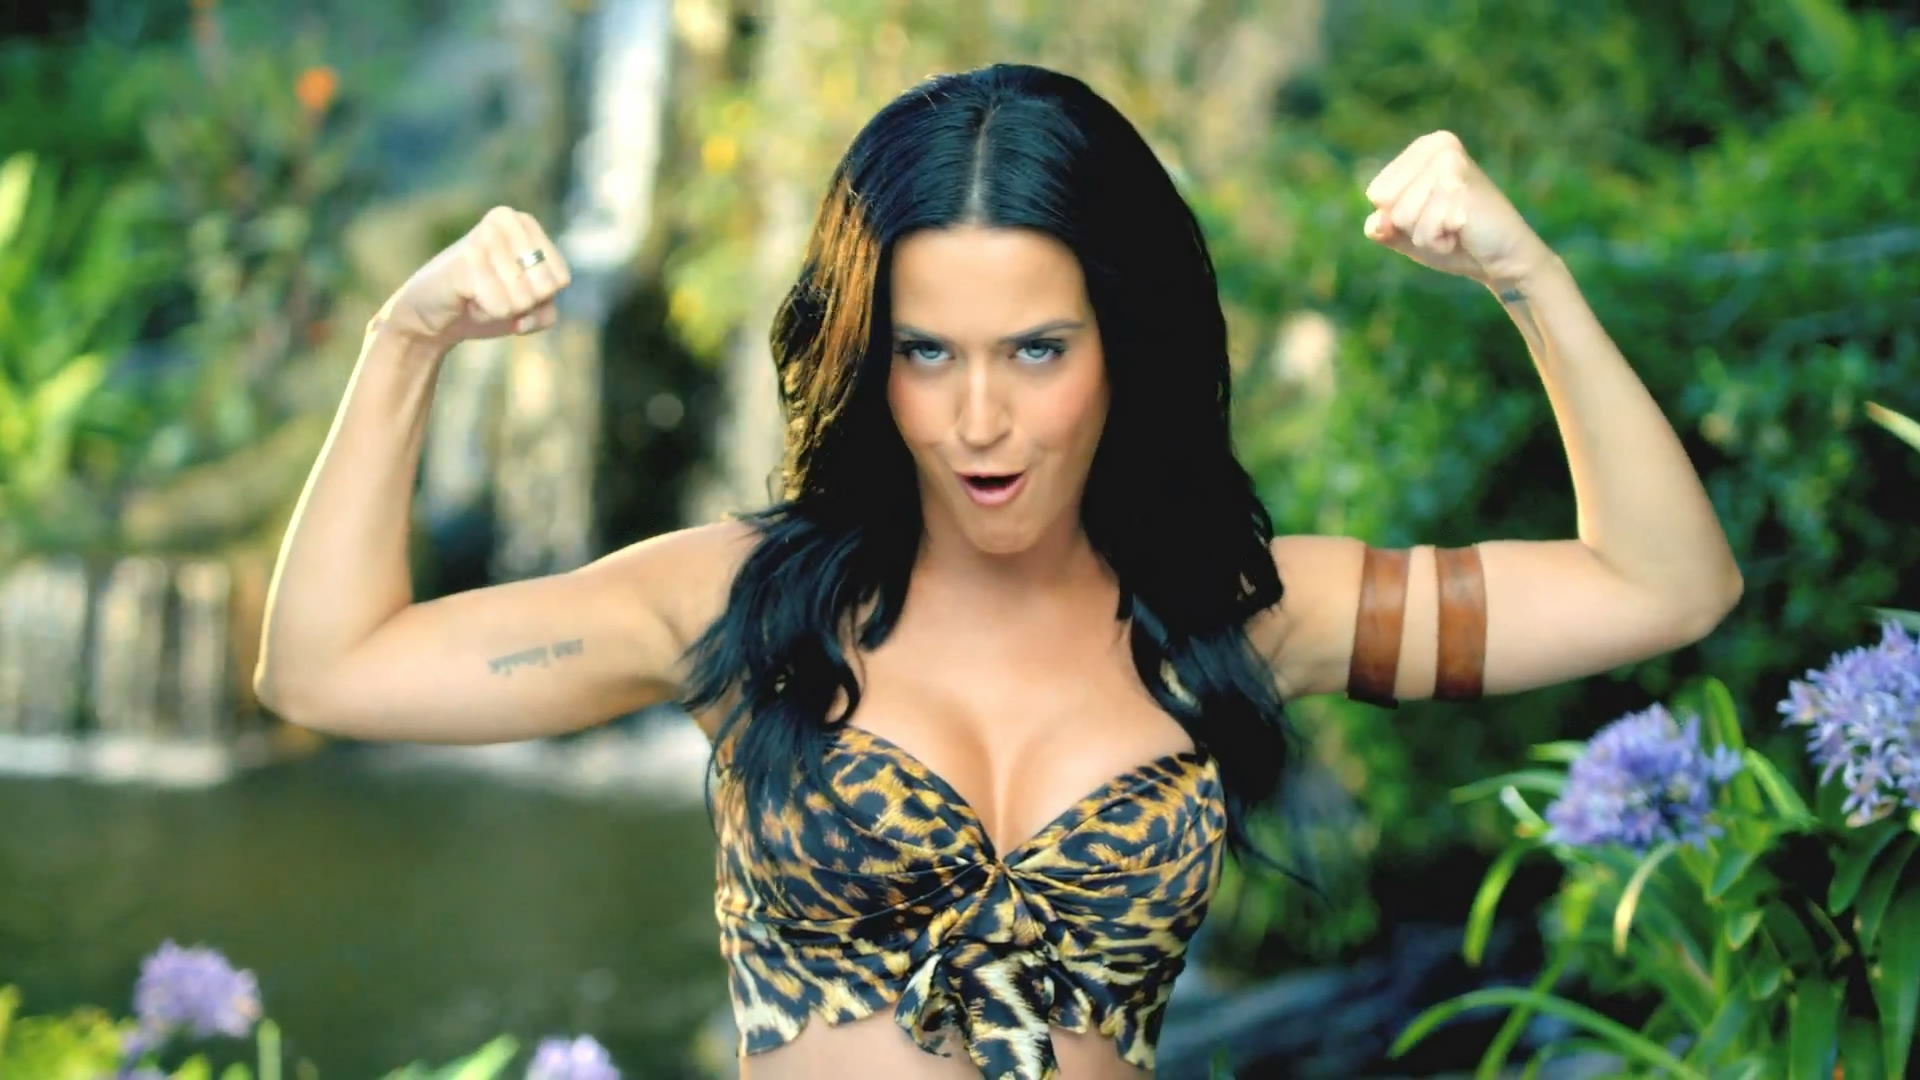 katy perry - roar music video hd